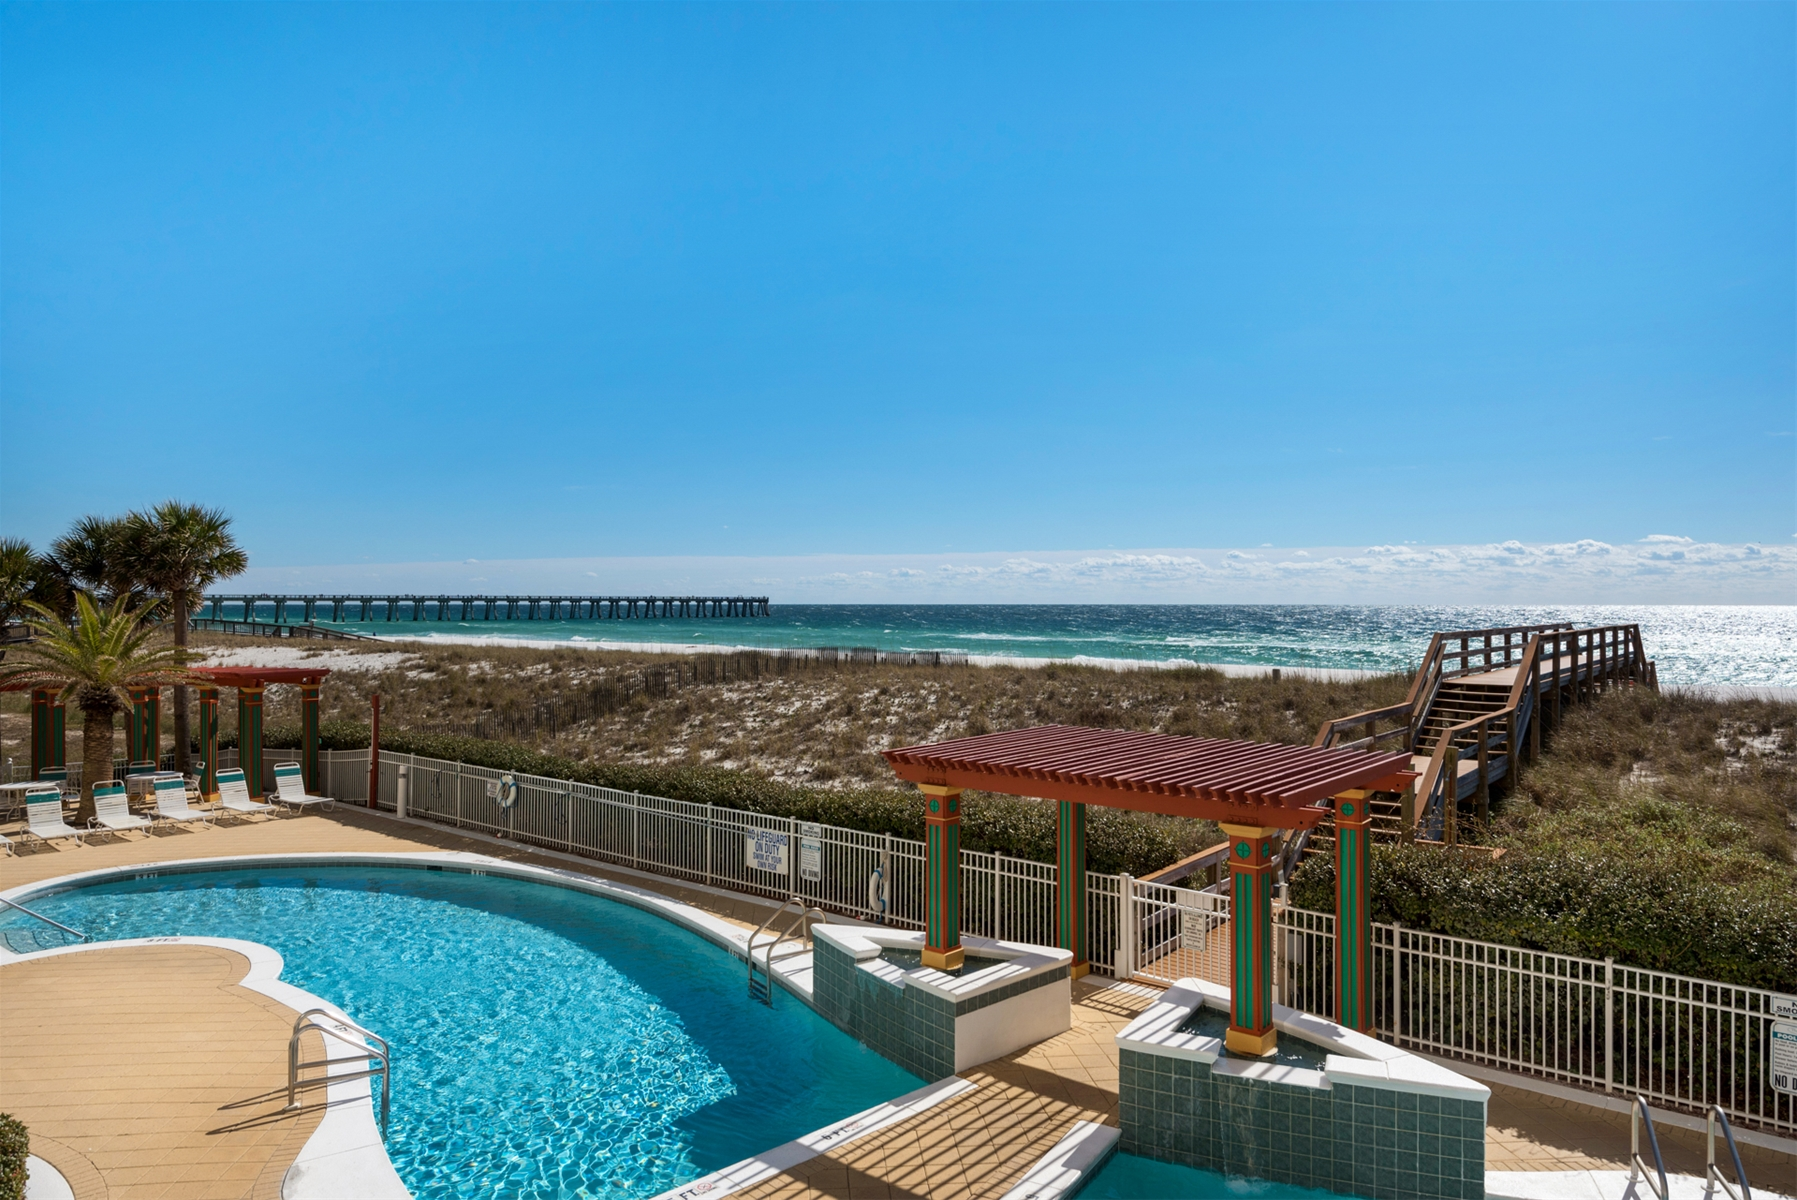 The Pearl of Navarre Pool Area and Beach Access